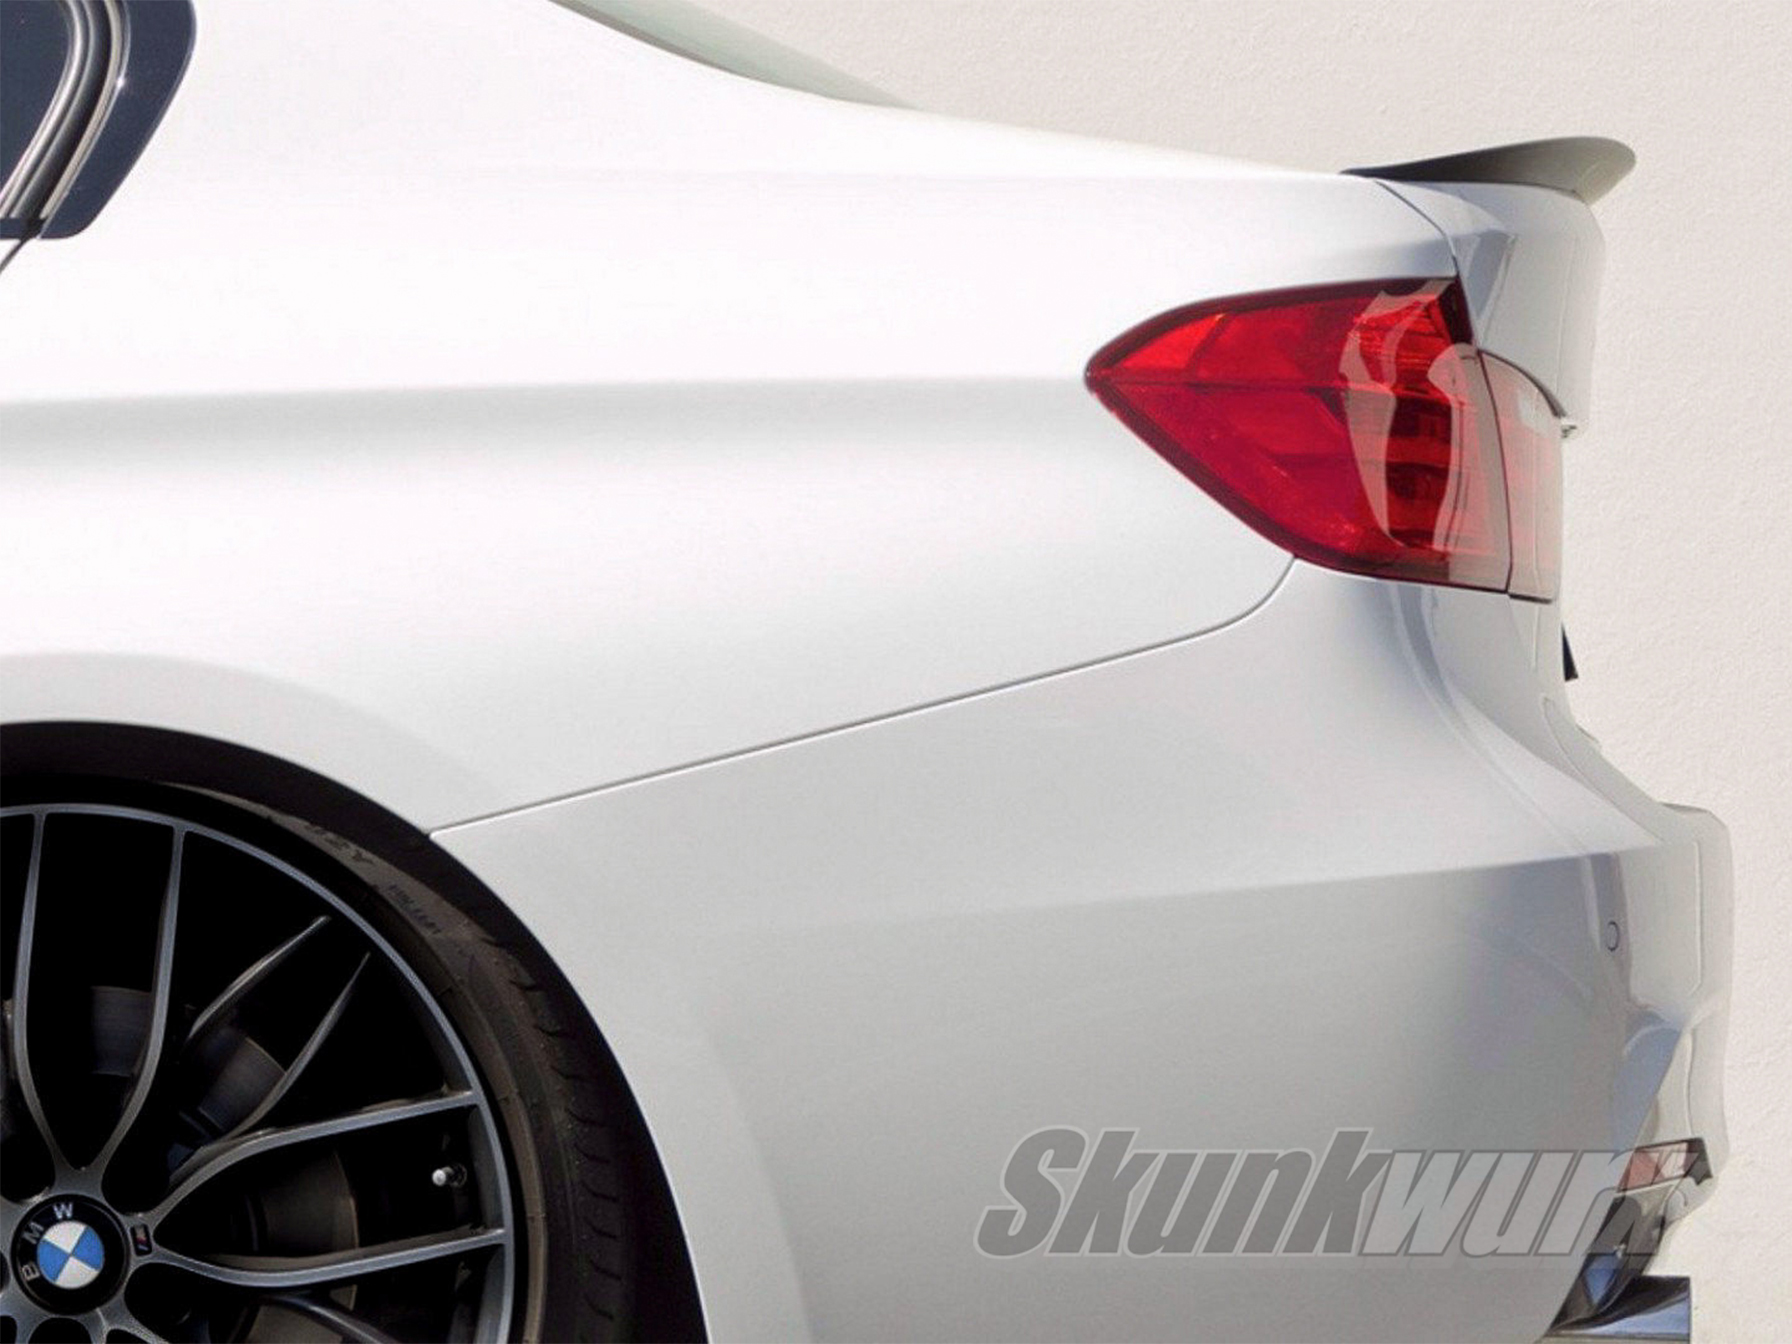 How To: Install a Boot/Trunk Spoiler on a BMW/Mercedes etc